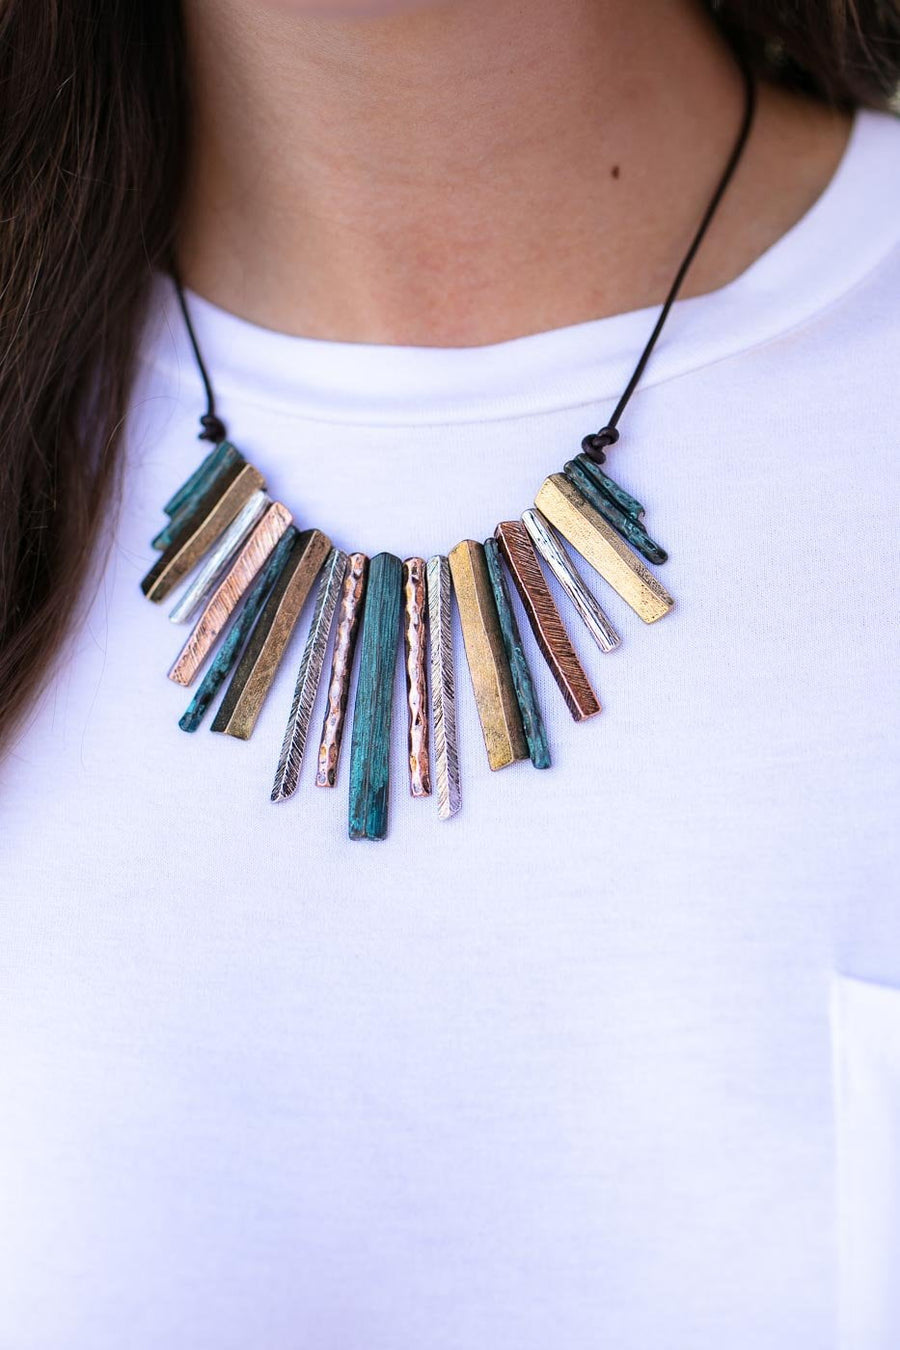 Accessories Mixed Metals Statement Necklace - Lotus Boutique